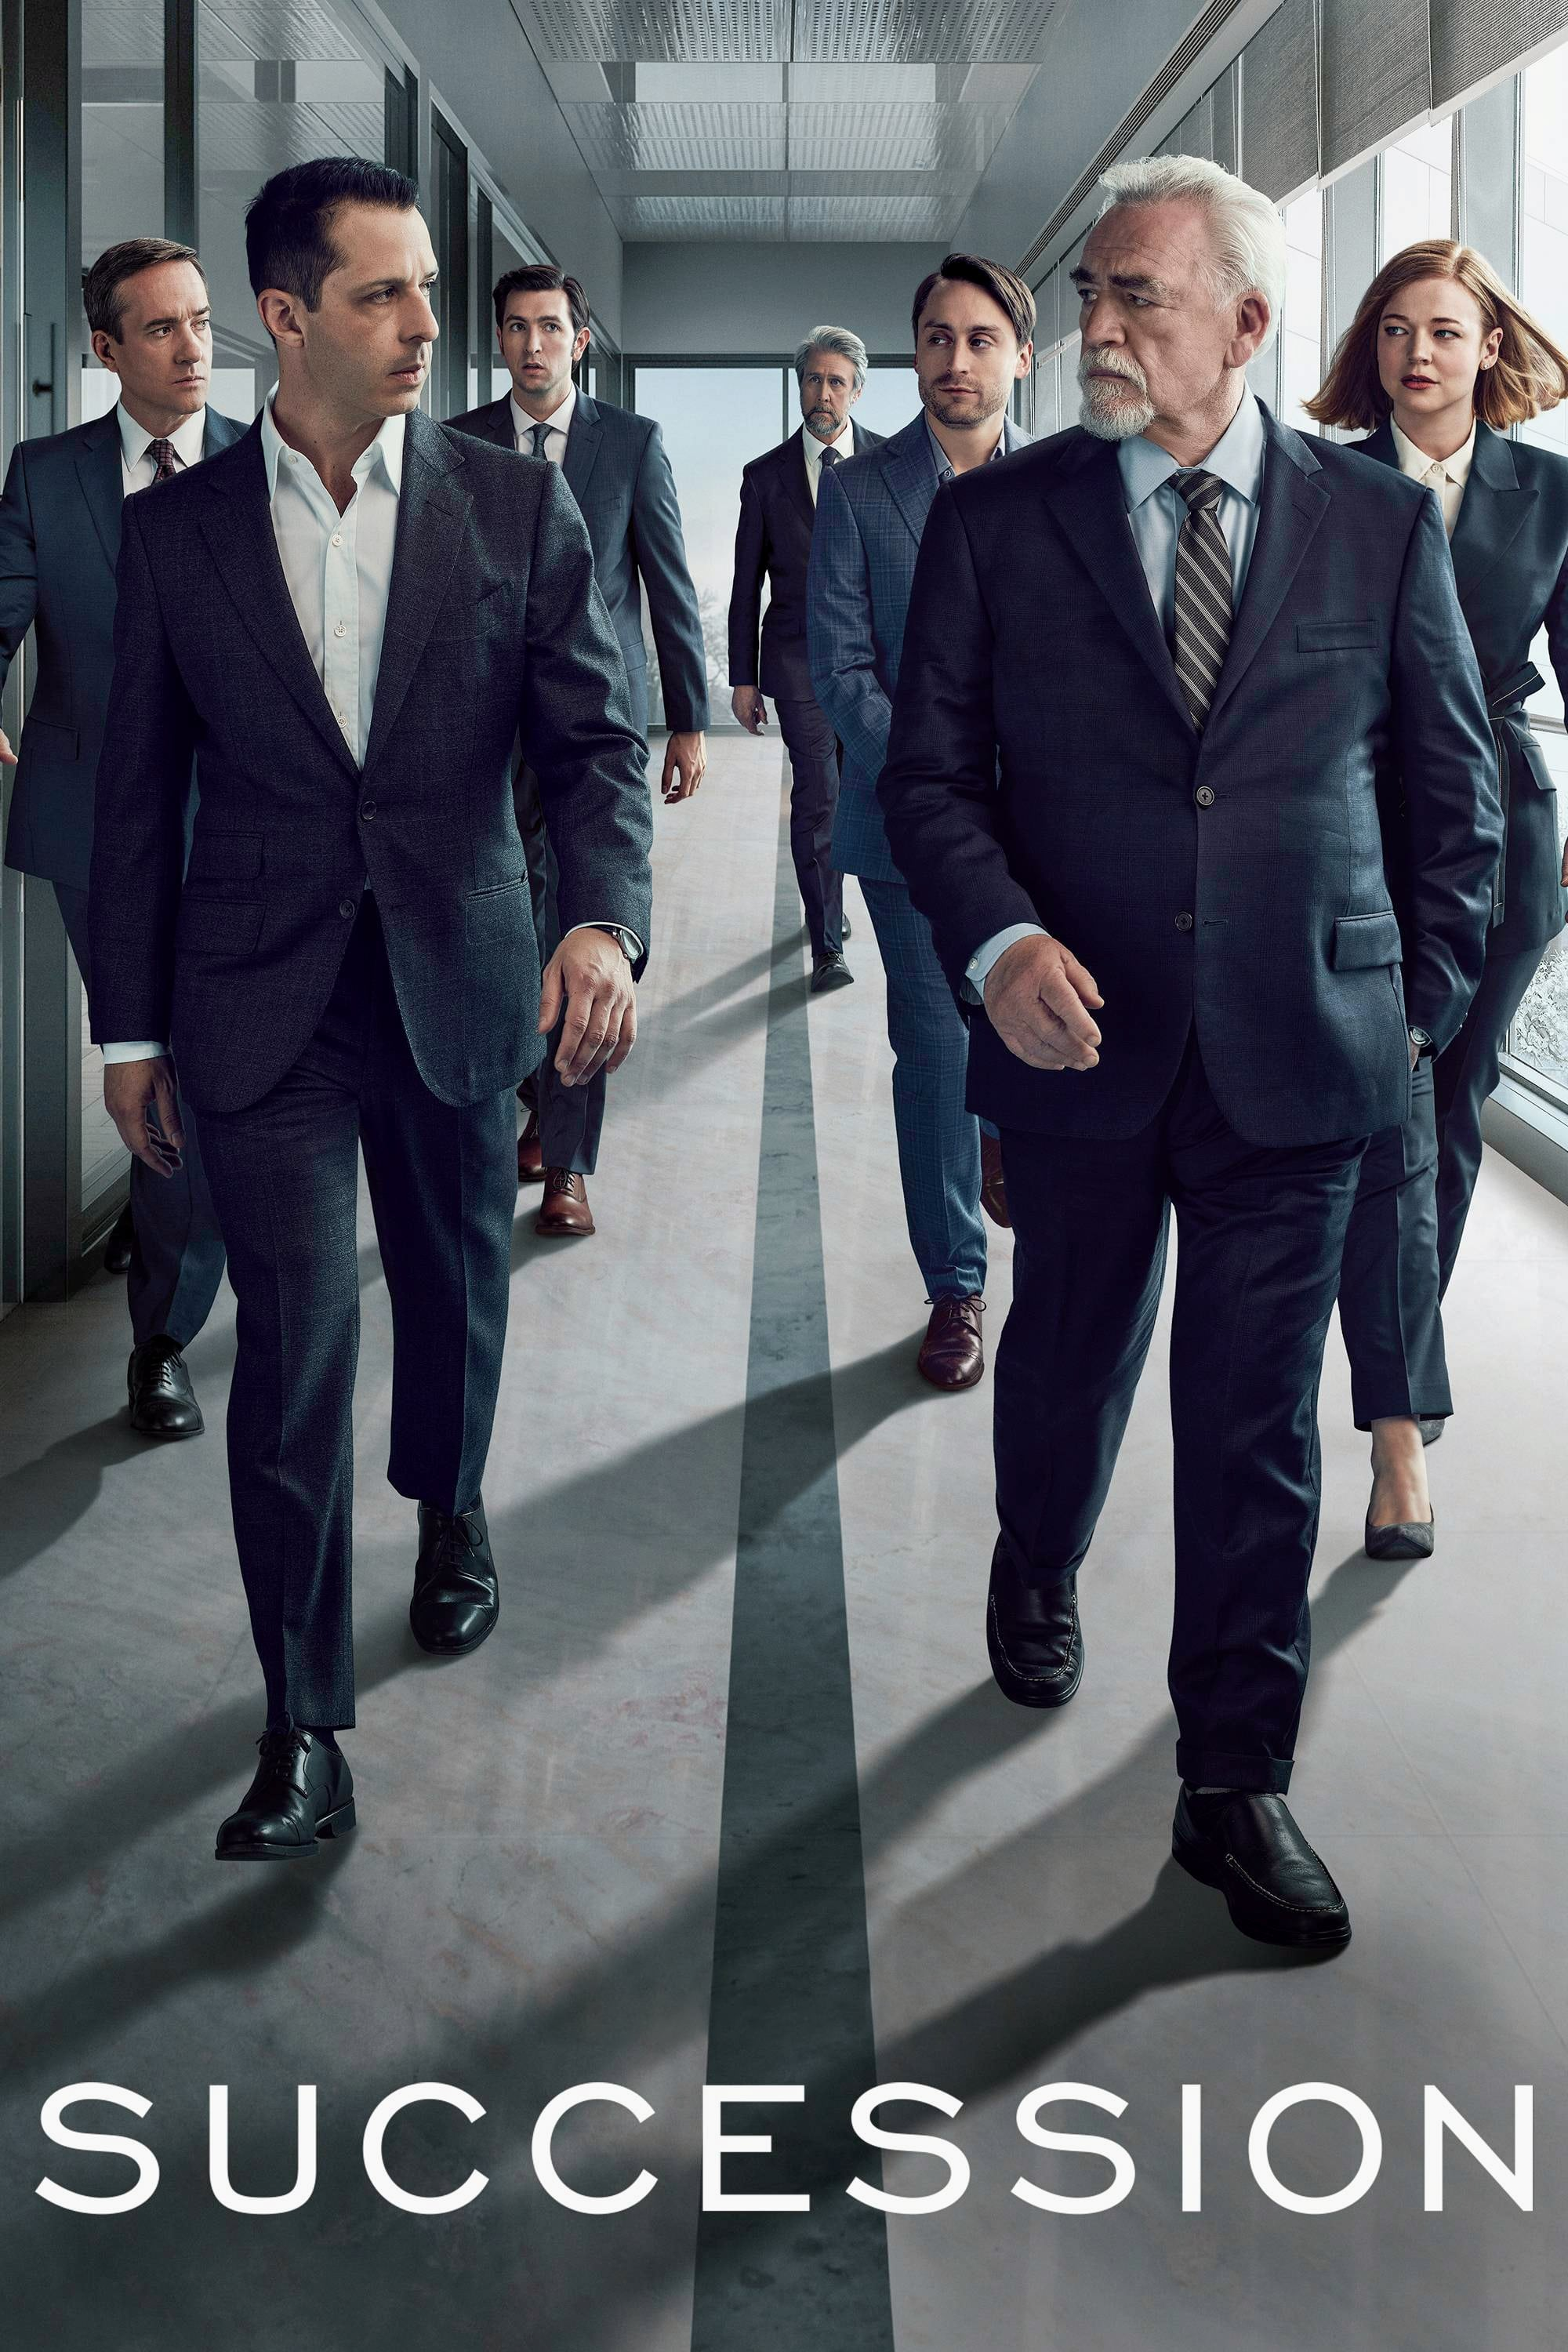 Succession TV Shows About New York City